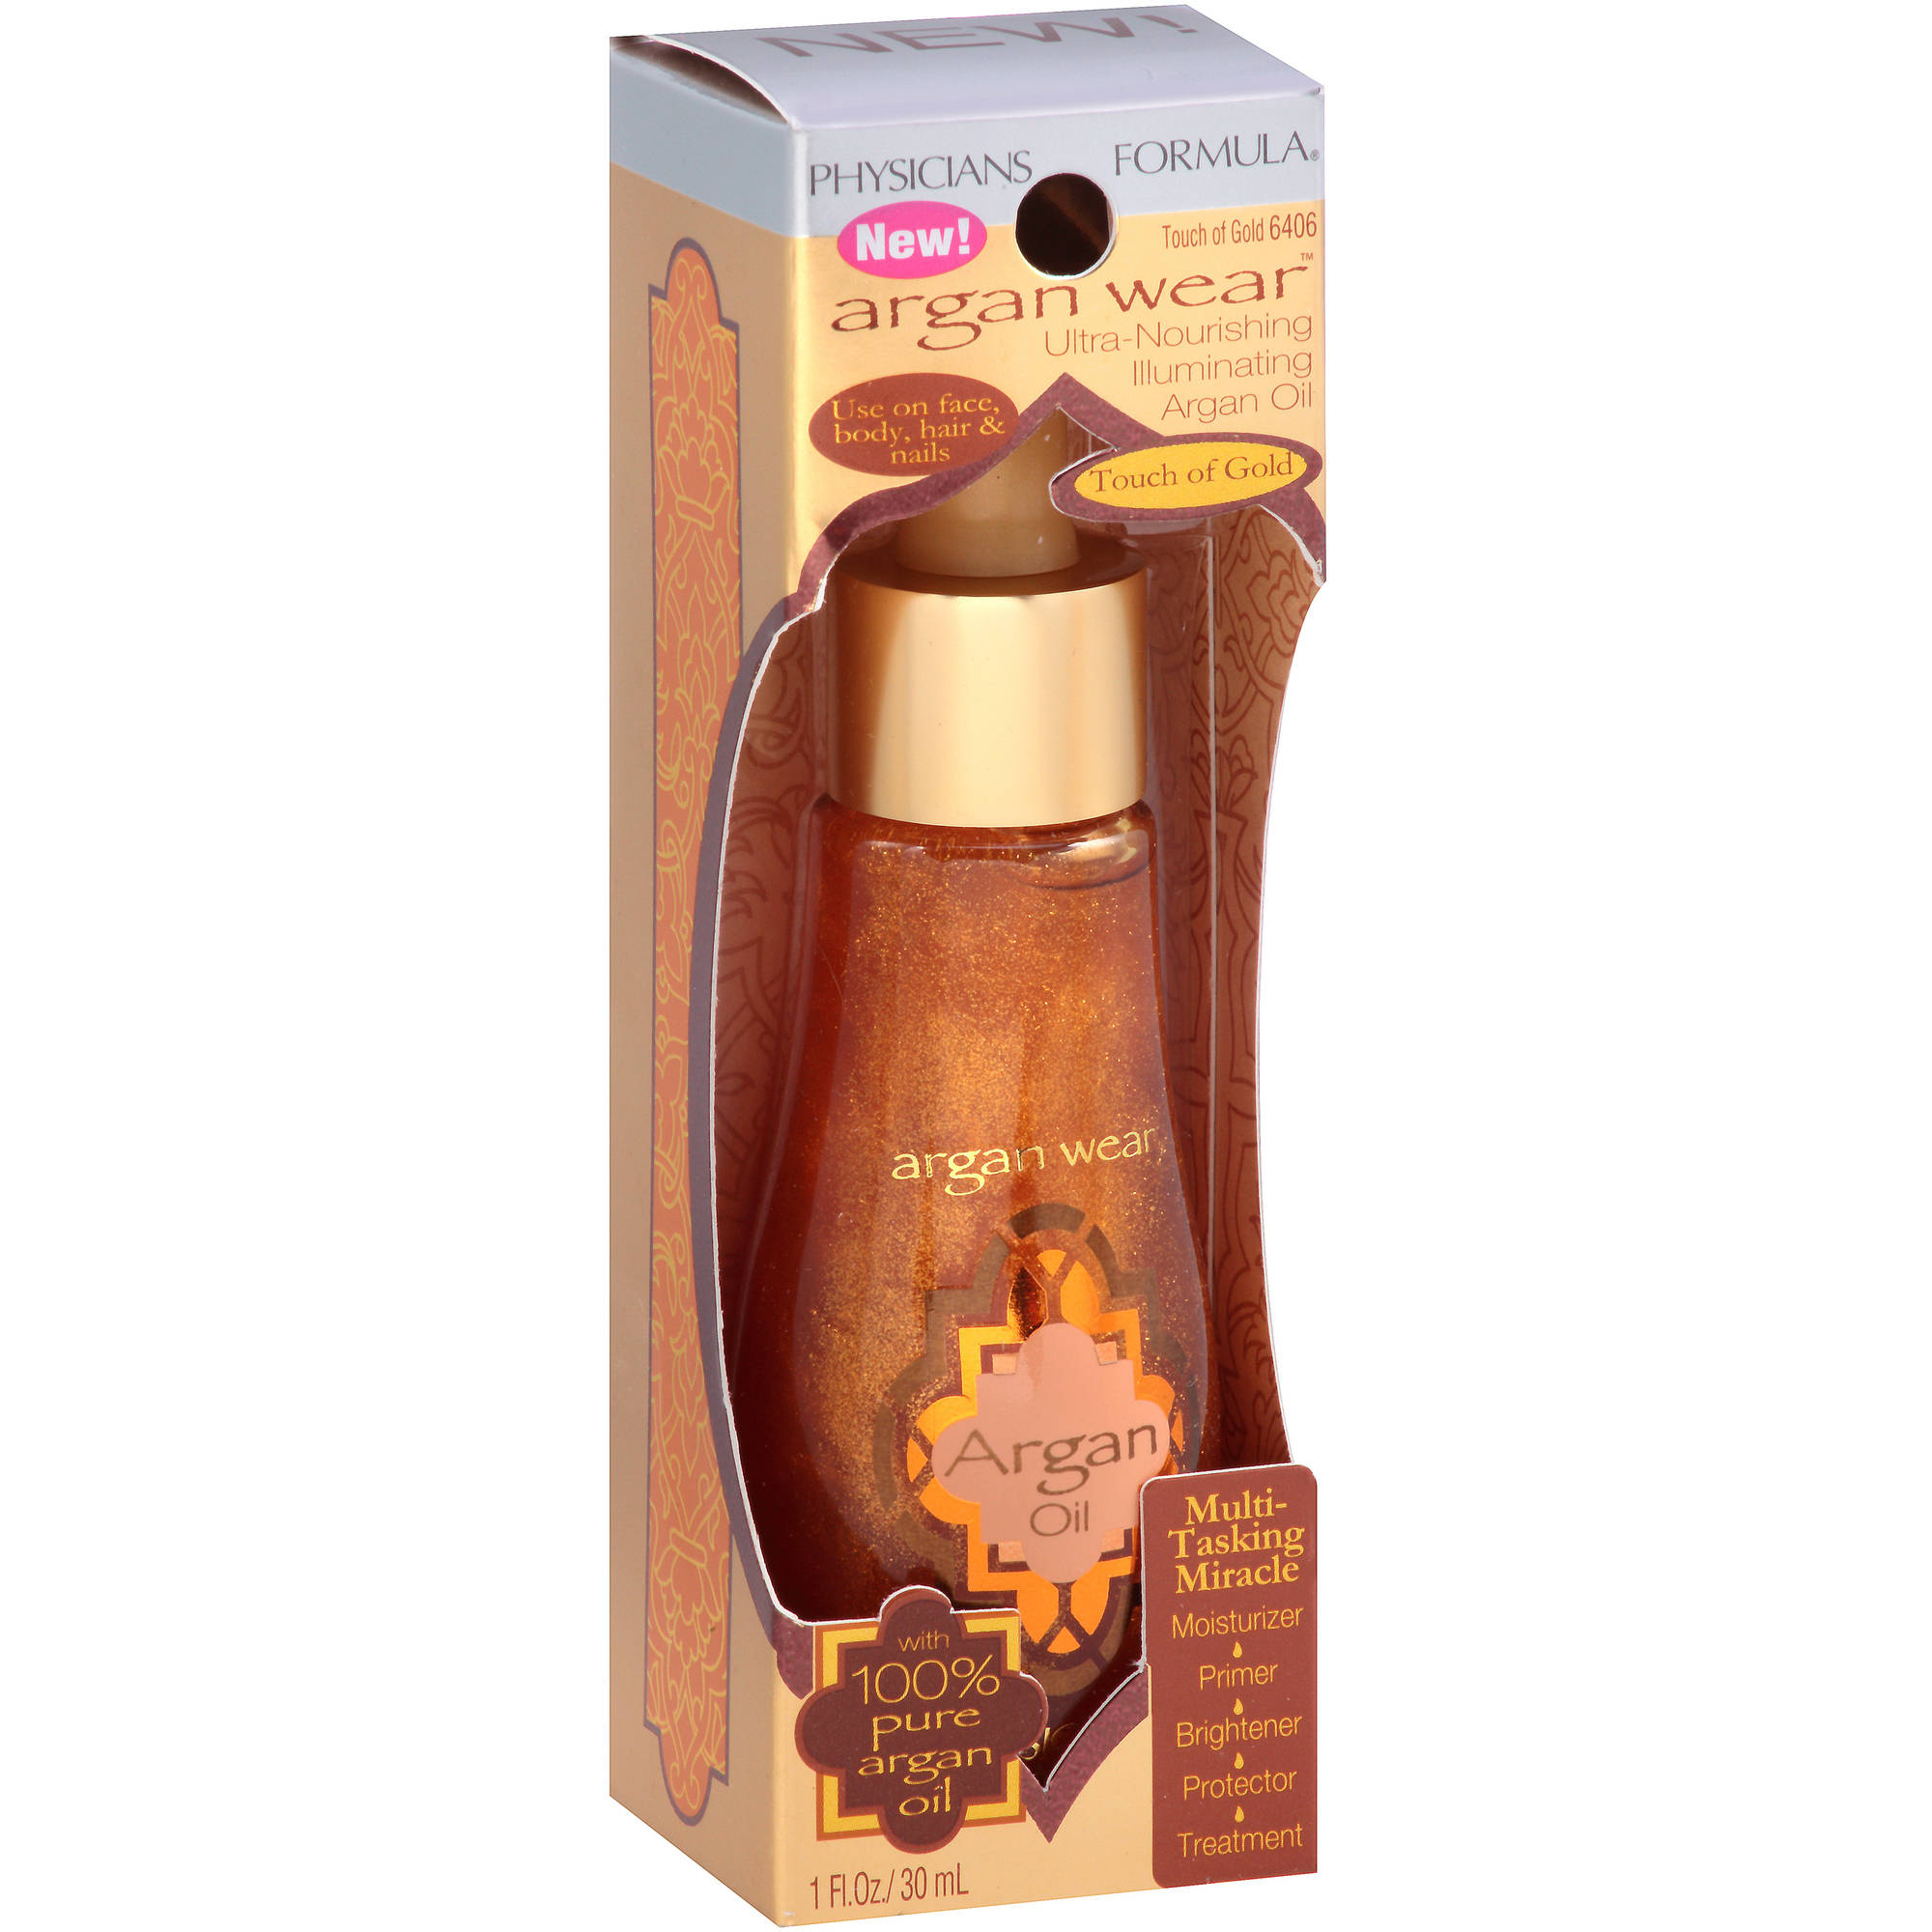 Physicians Formula Argan Wear Ultra-Nourishing Illuminating Argan Oil, 6406 Touch of Gold, 1 fl oz